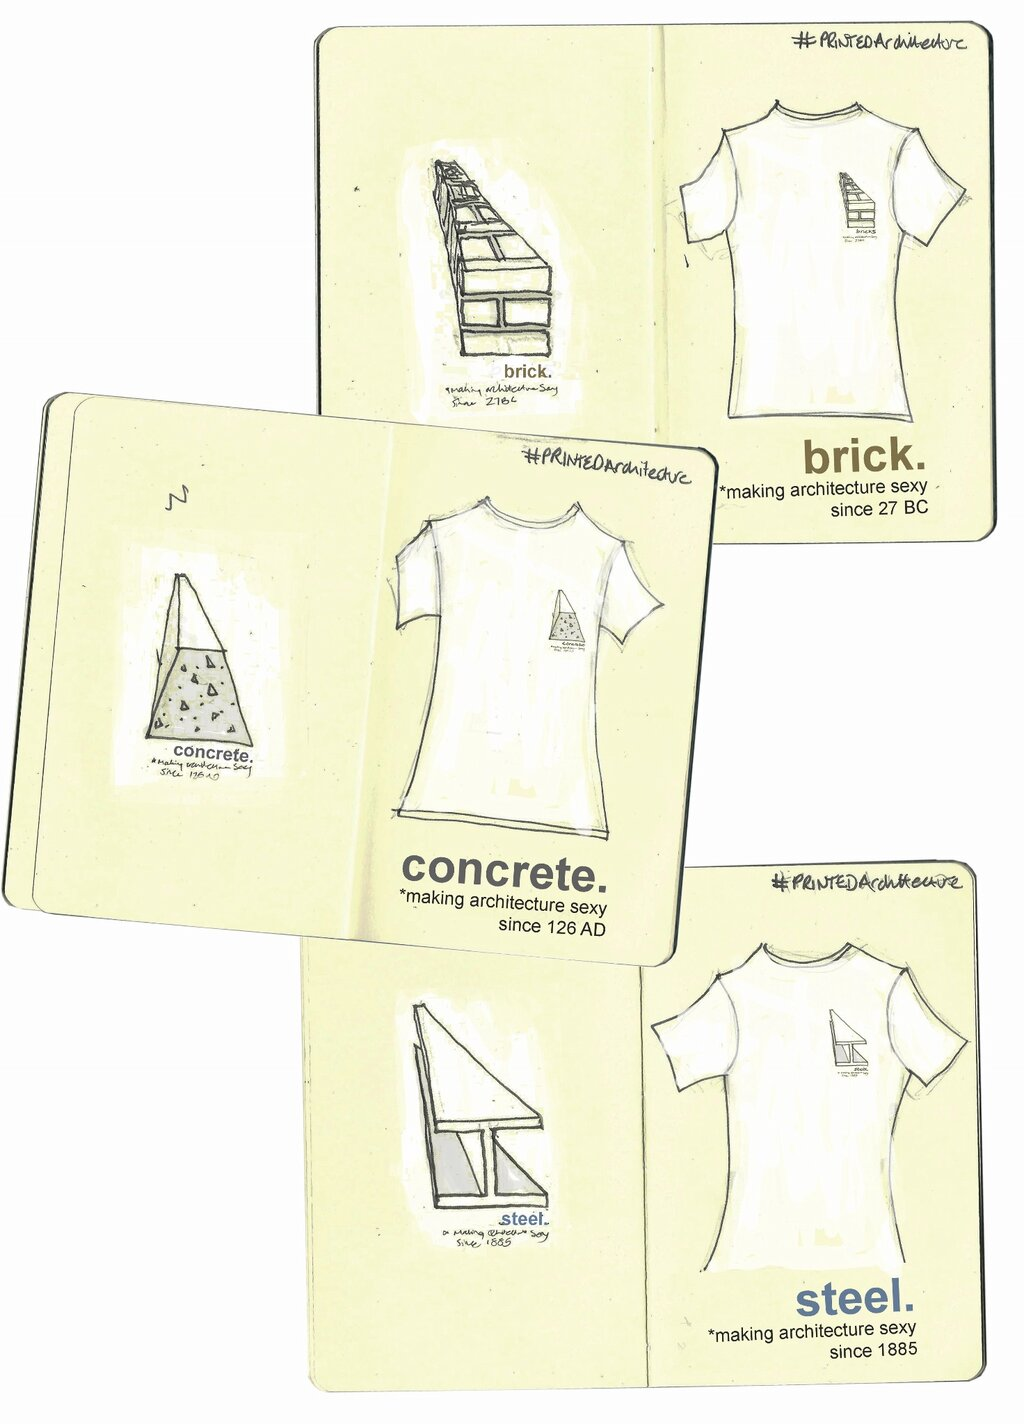 brick.concrete.steel… making architecture sexy since.. [design for an 'architecture inspired' tshirt for the #PRINTEDArchitecture competition run by the RIBA for London Fashion week]